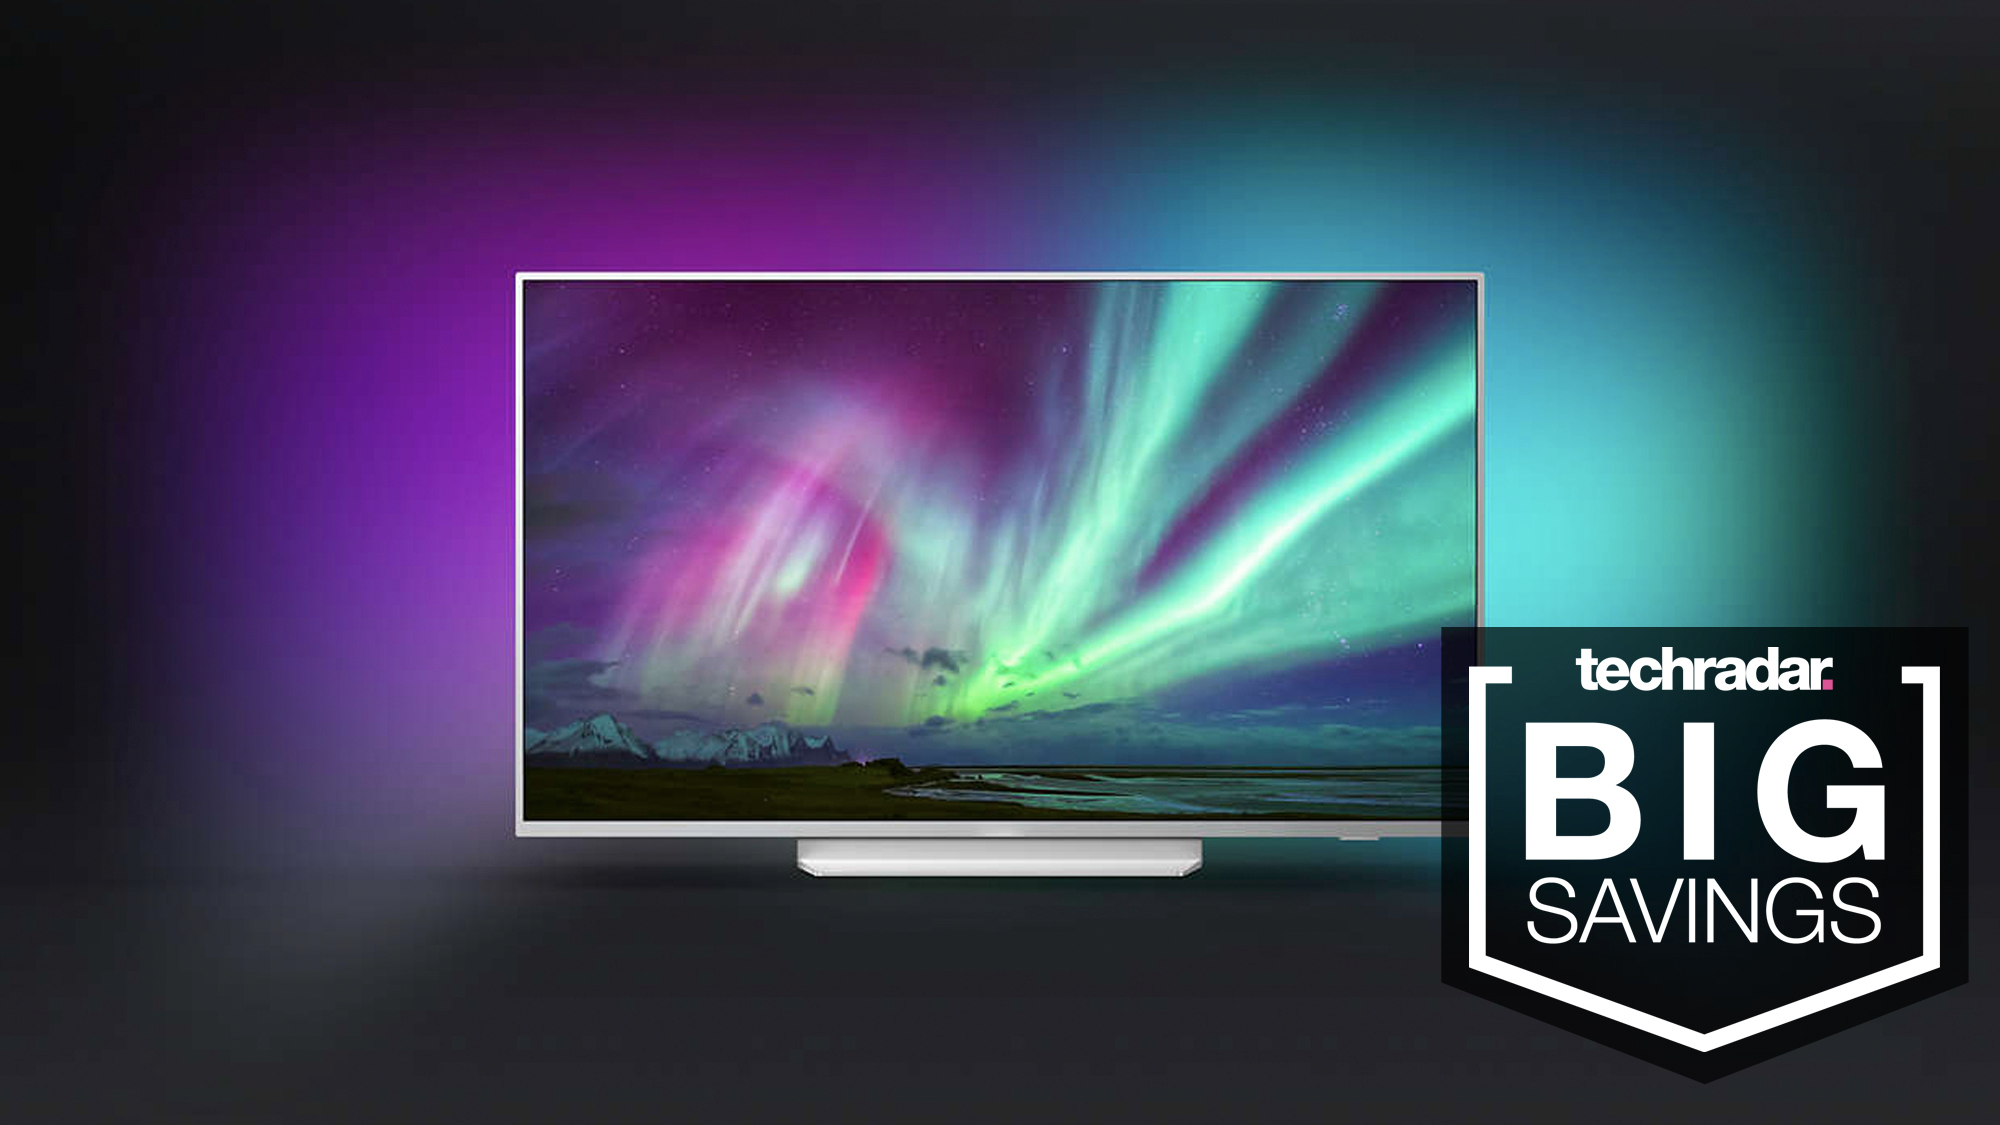 These Philips 4K TVs are back at insane sales prices, with Ambilight to boot